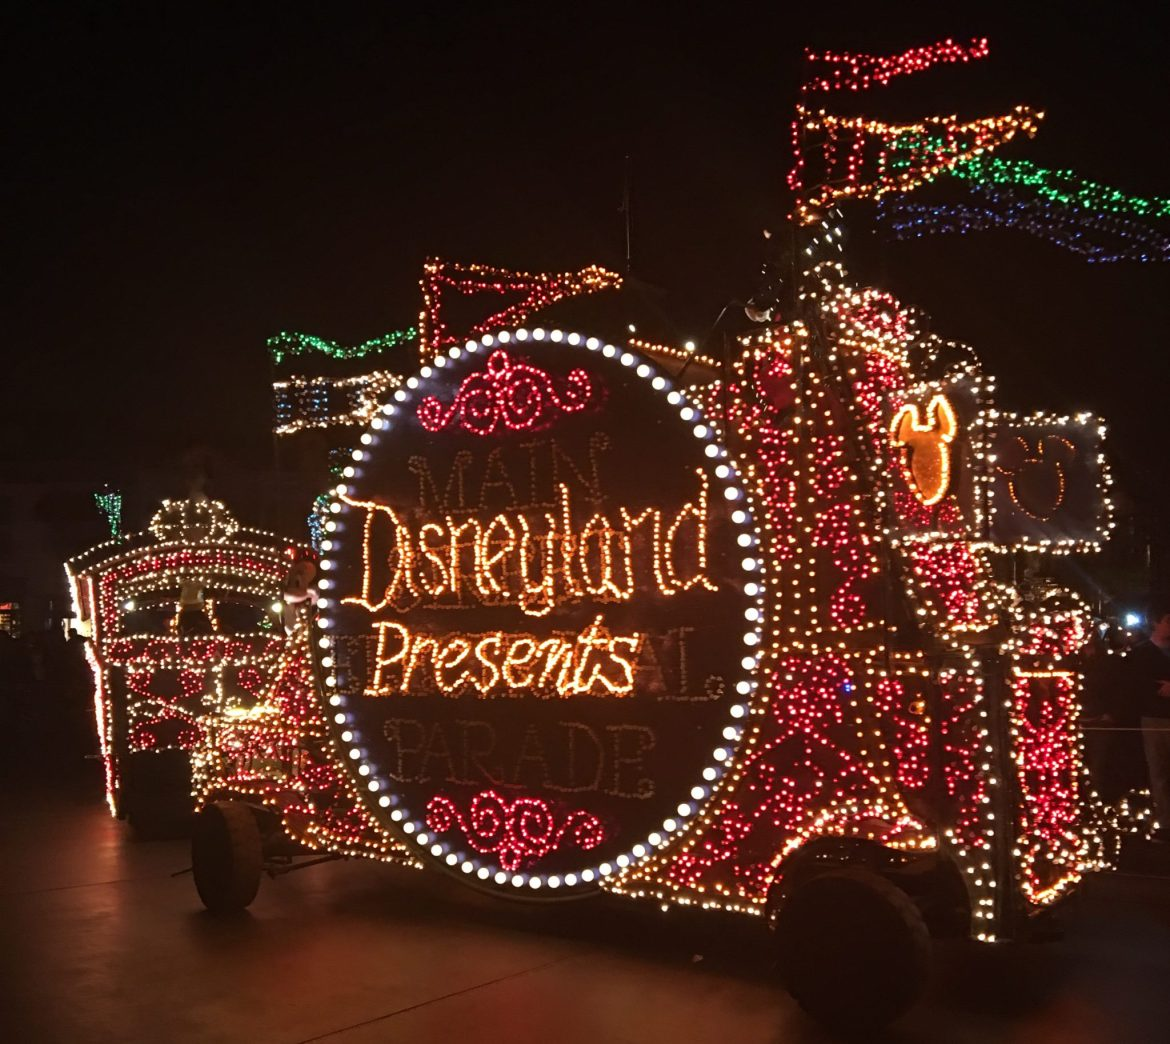 Watch a Live Stream of Main Street Electrical Parade at Disneyland Park on March 7